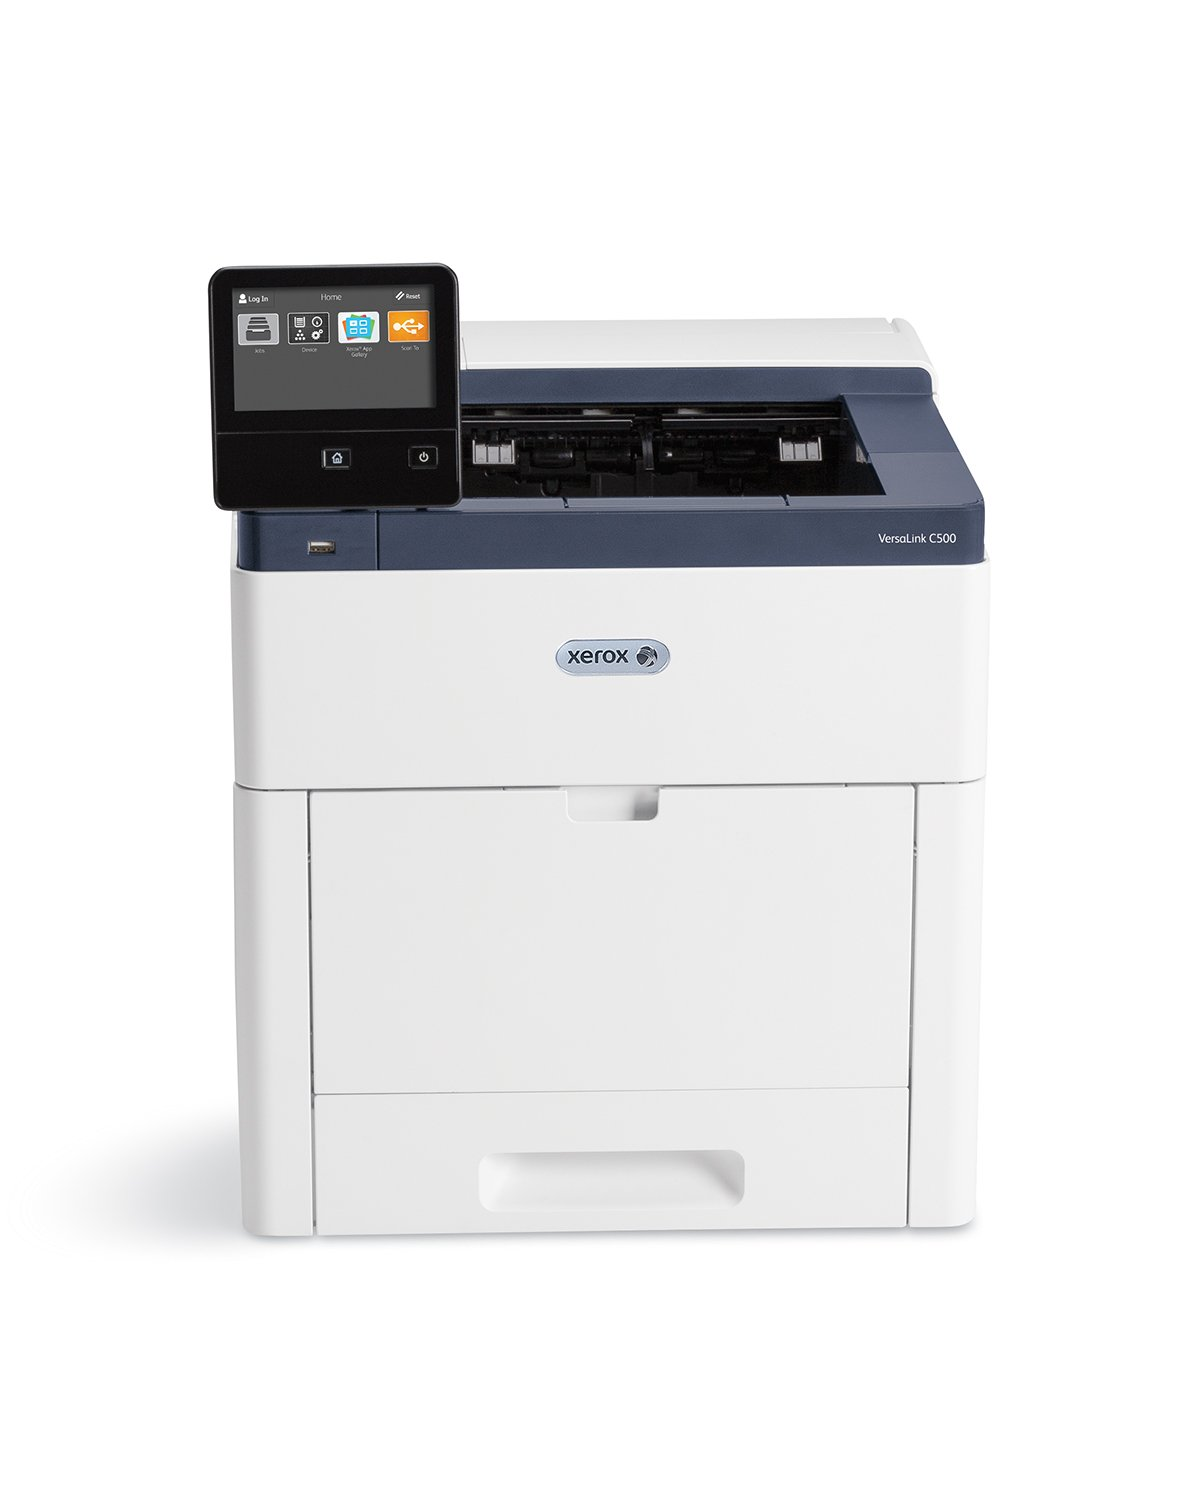 Amazon Xerox C500 DN VersaLink Color Laser Printer Letter Legal up to 45ppm USB Ethernet Automatic 2 Sided Printing 550 Sheet Tray 150 Sheet Multi